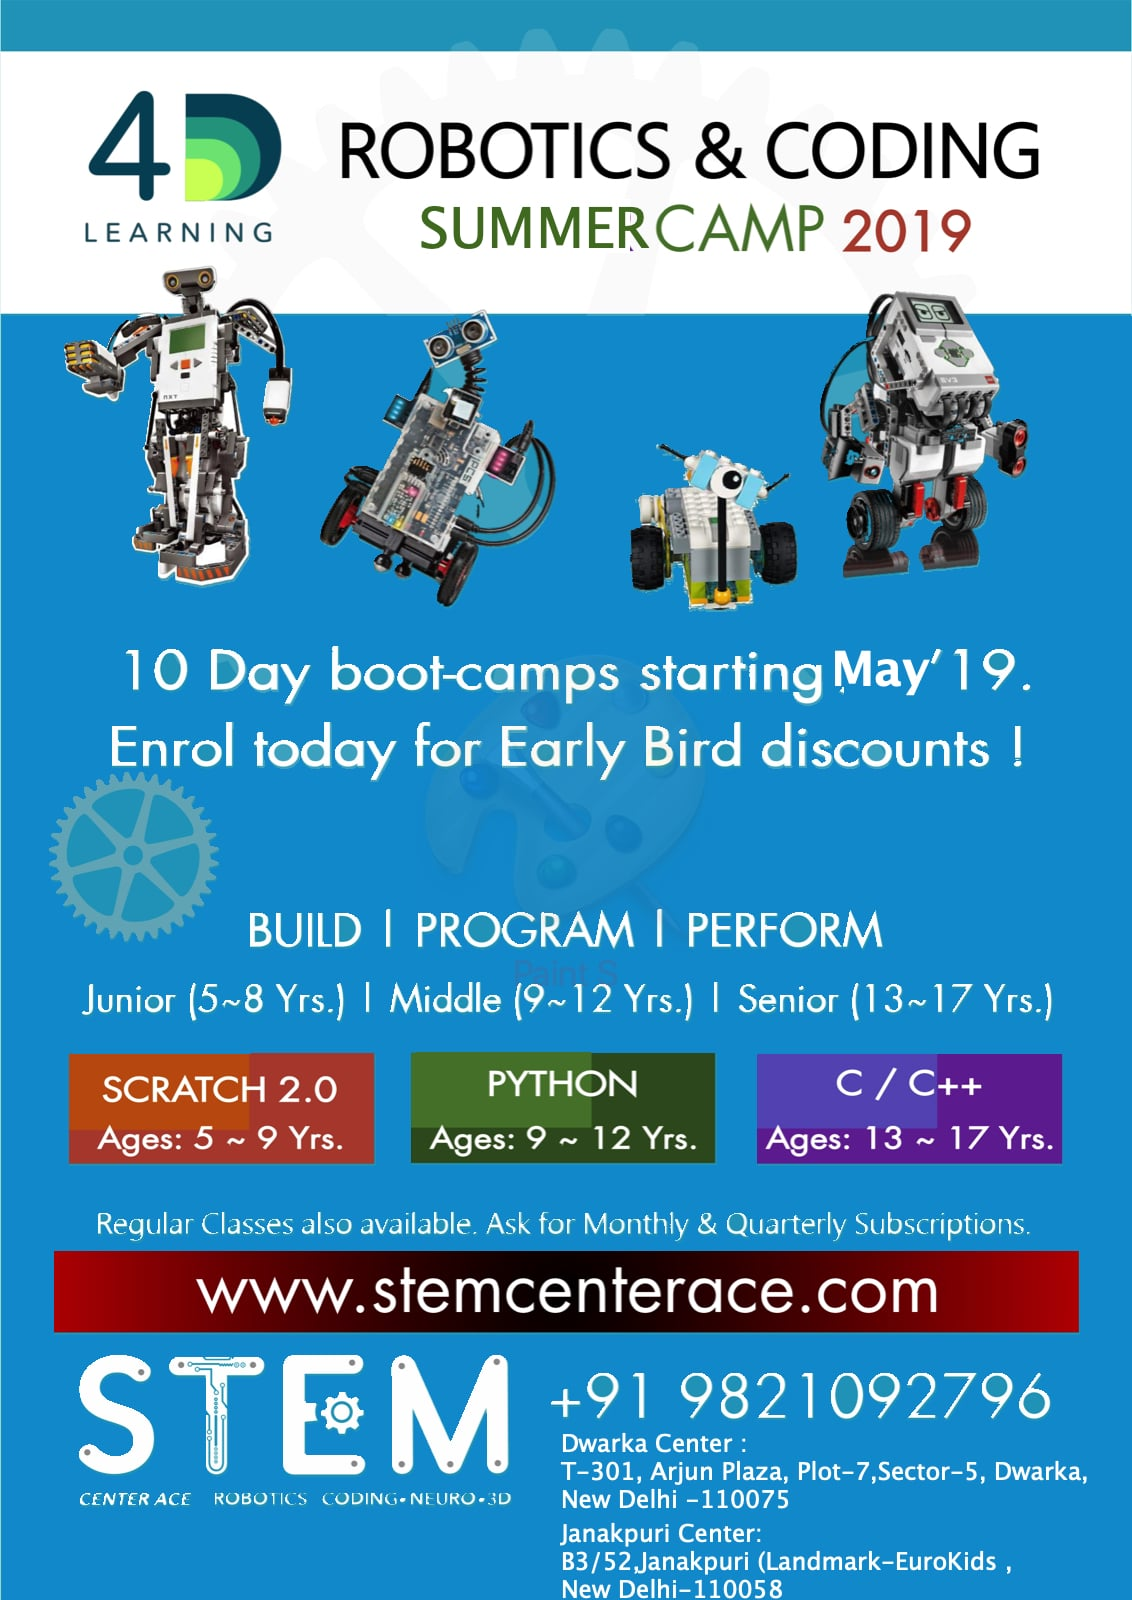 SUMMER CAMP 2019 for kids in Robotics and Coding